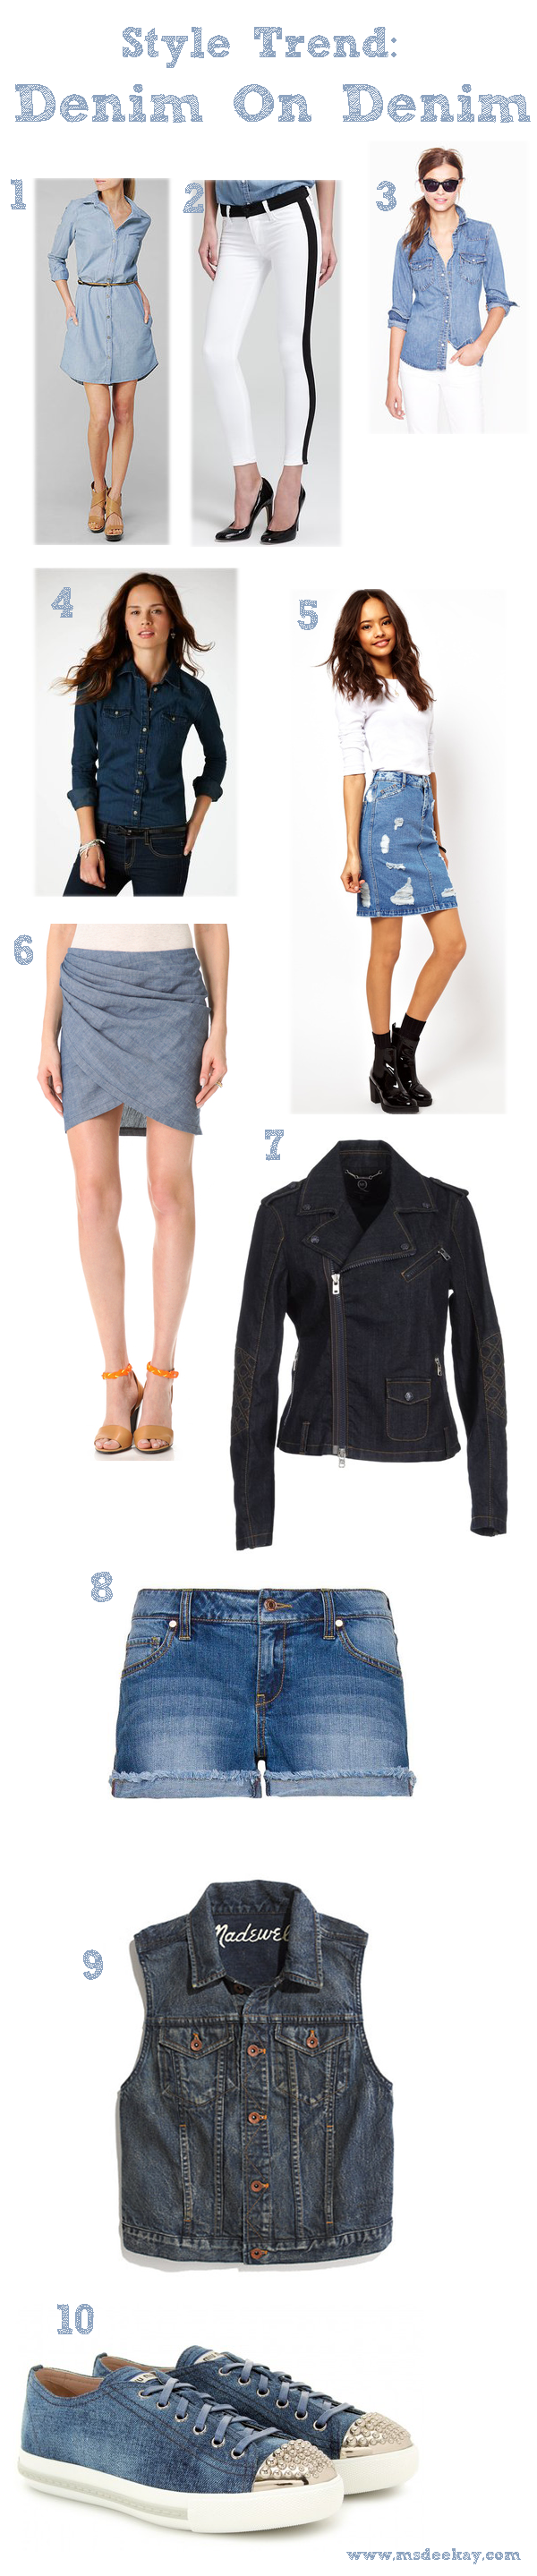 Style Trend: Denim On Denim